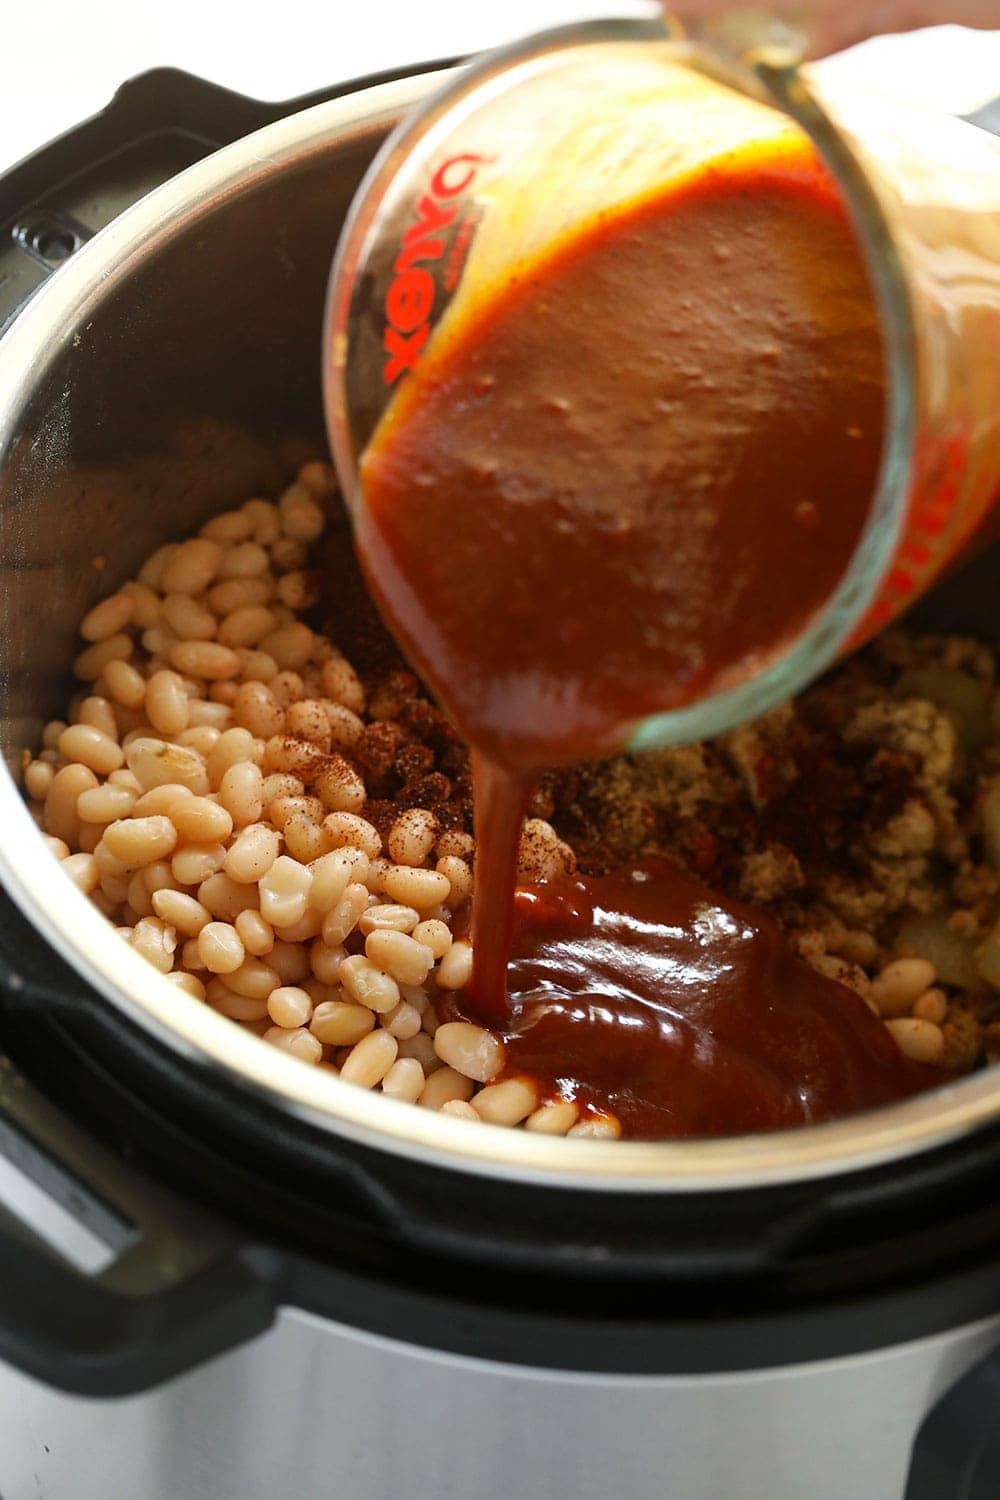 Pouring BBQ sauce into the Instant Pot!